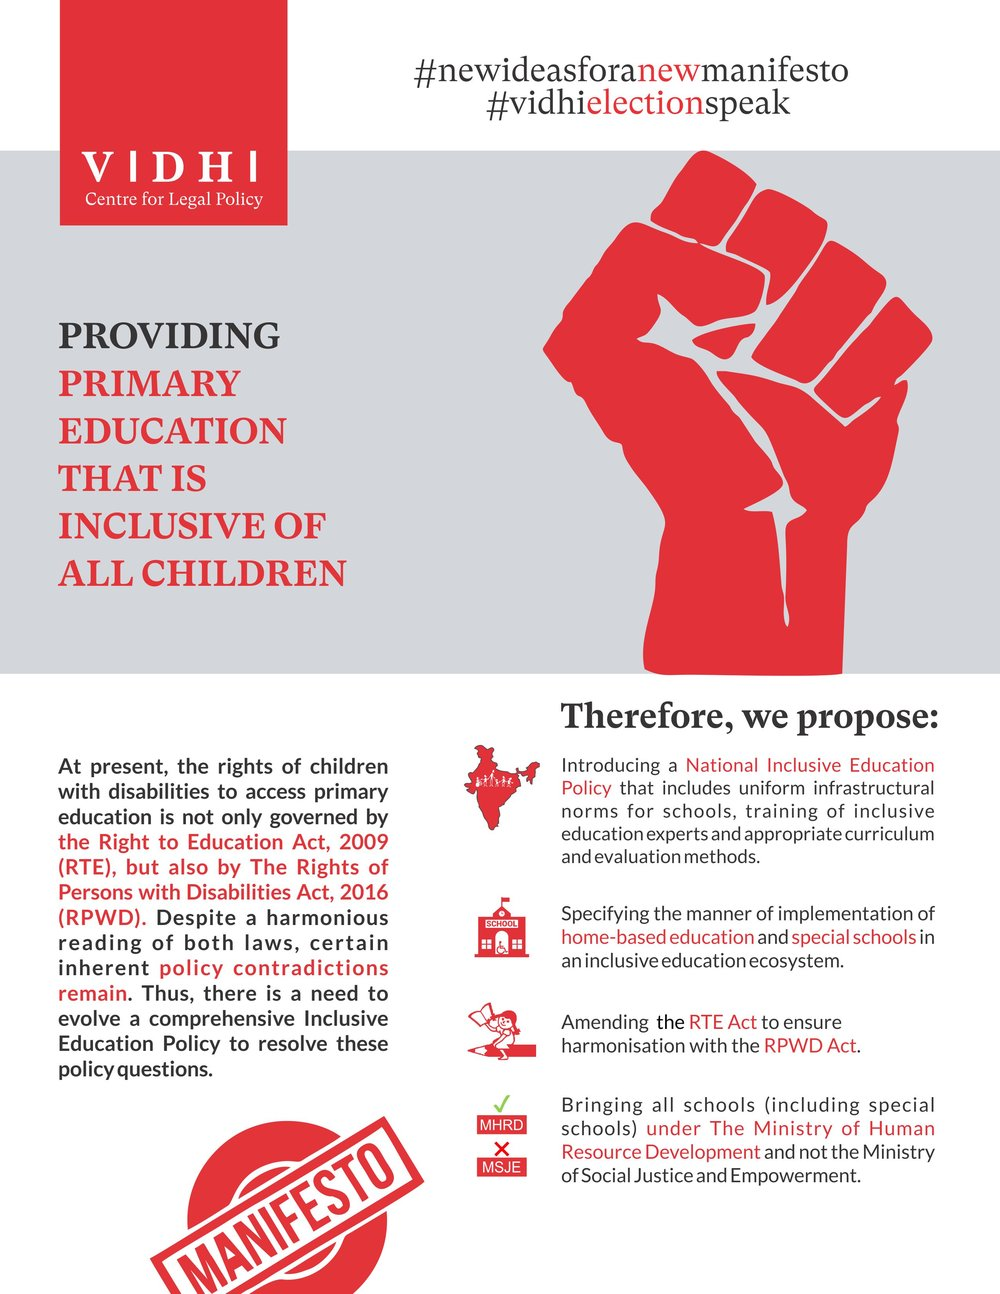 Providing Primary Education that is Inclusive of All Children 1